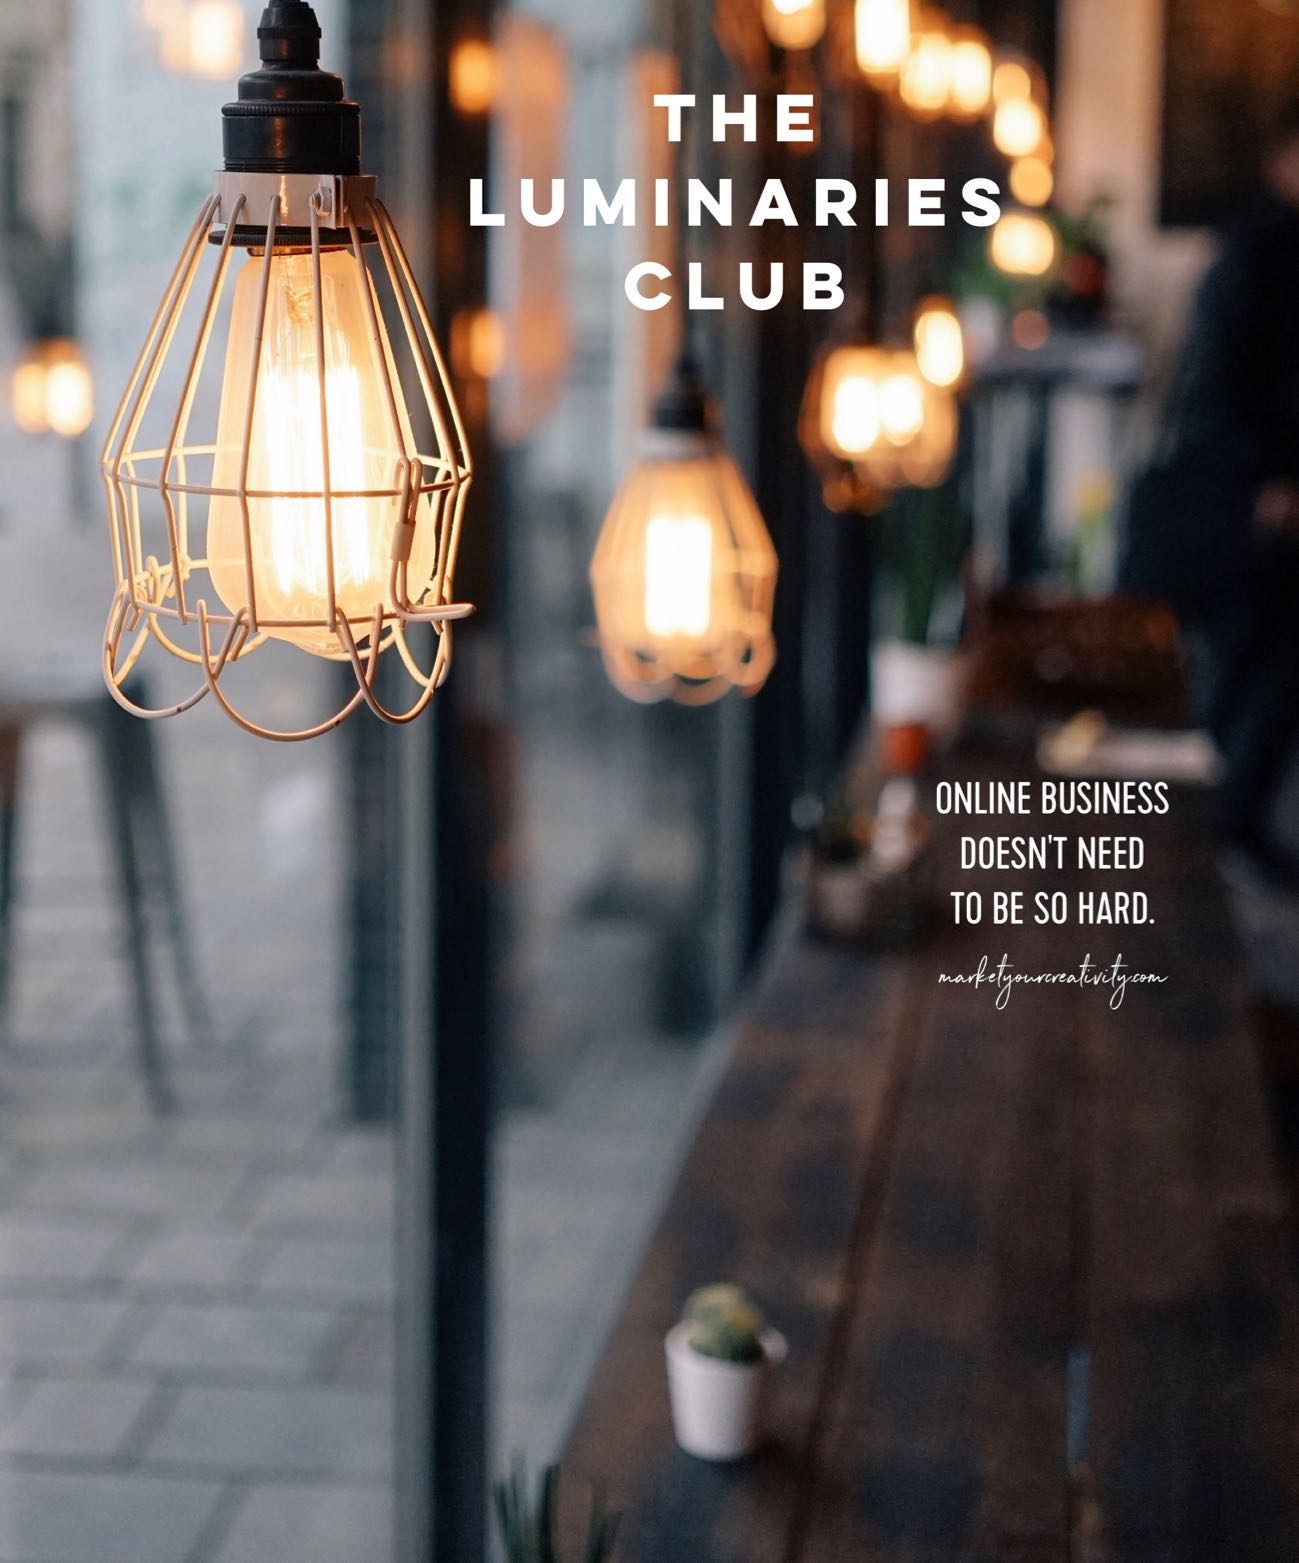 The Luminaries Club by Lisa Jacobs